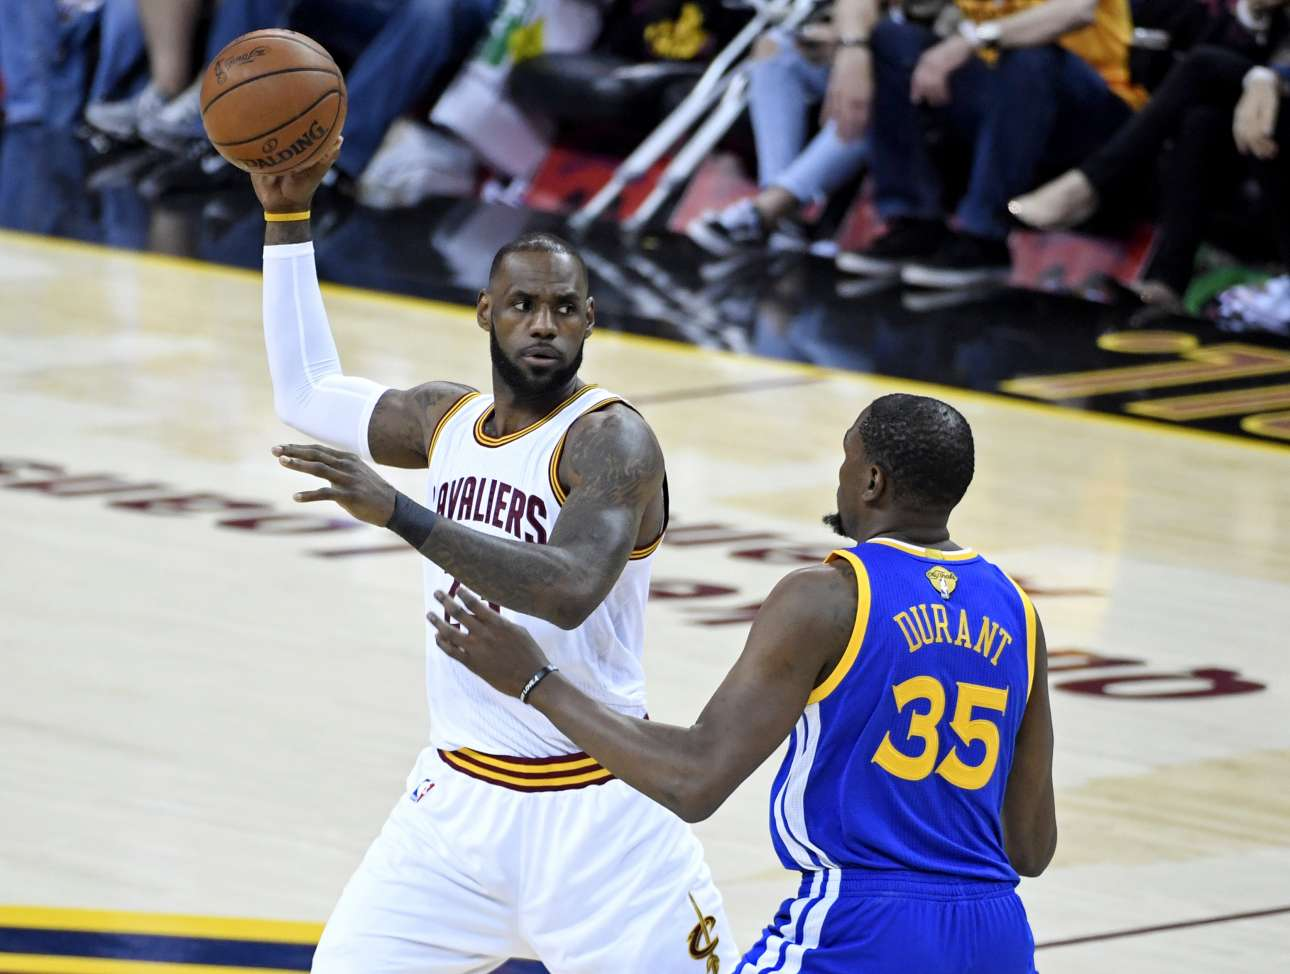 2017-06-08T013423Z_2006171517_NOCID_RTRMADP_3_NBA-FINALS-GOLDEN-STATE-WARRIORS-AT-CLEVELAND-CAVALIERS